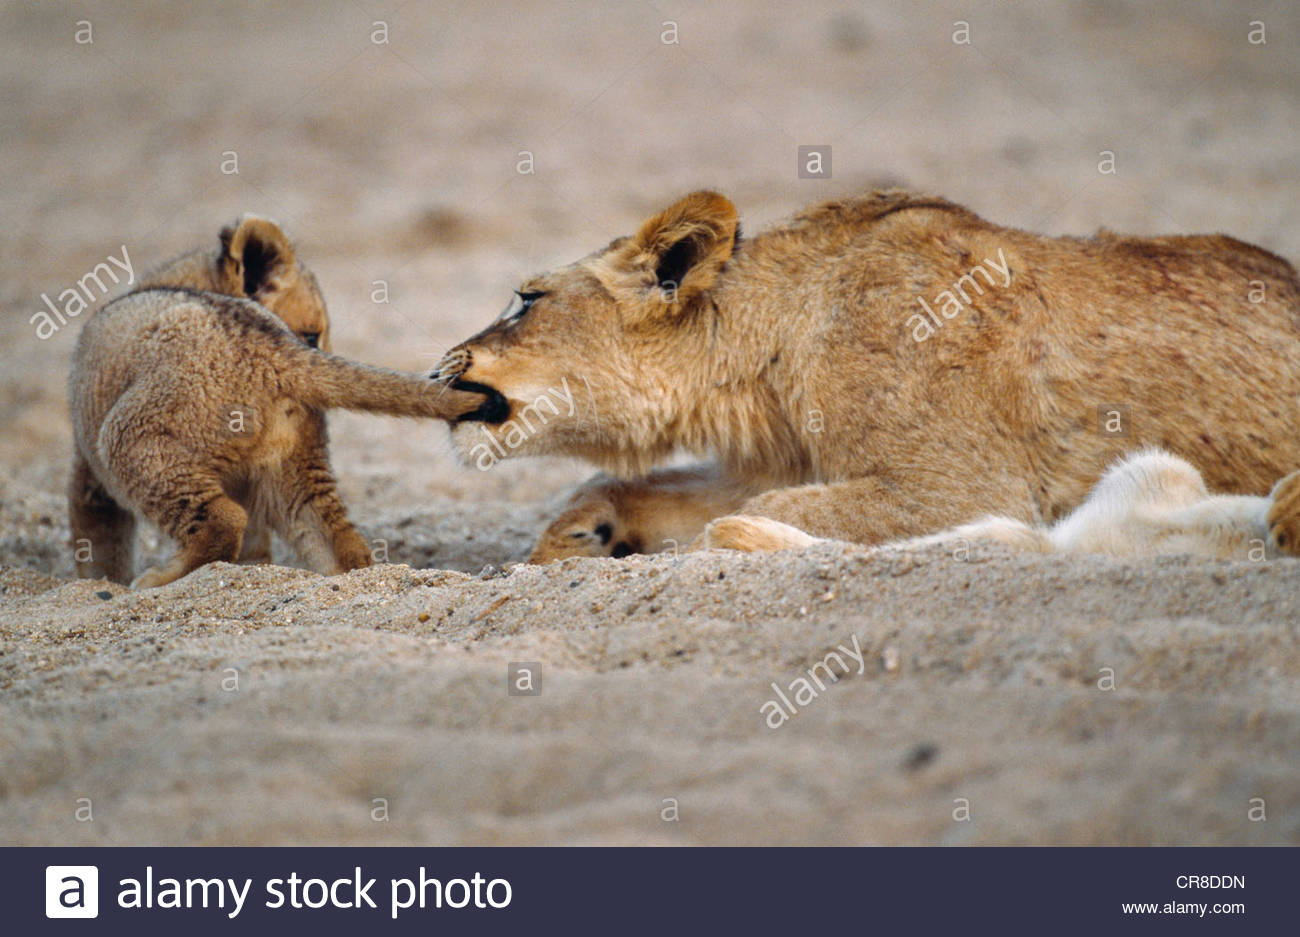 A second year African lion cub playfully bites a first year cubs tail, Kruger National Park, South Africa - Stock Image